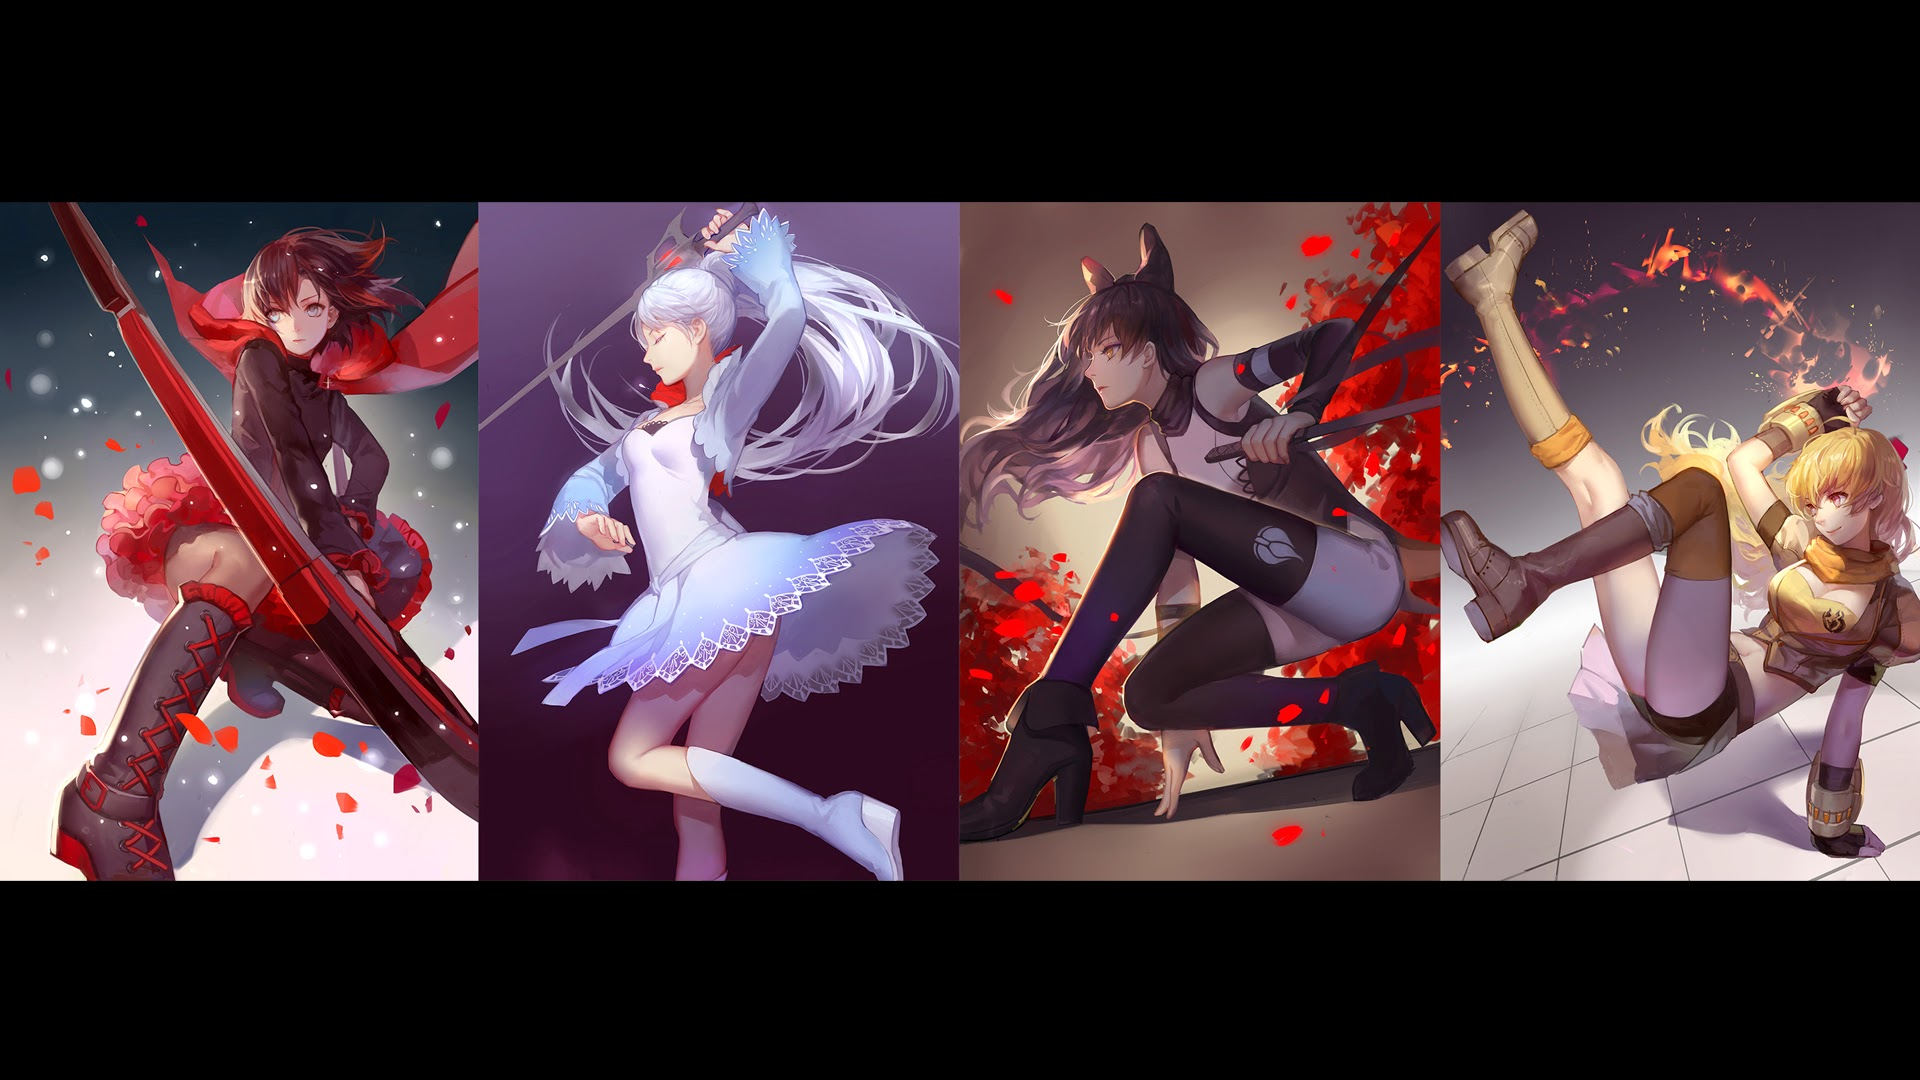 Looking for a wallpaper rwby for Looking for wallpaper